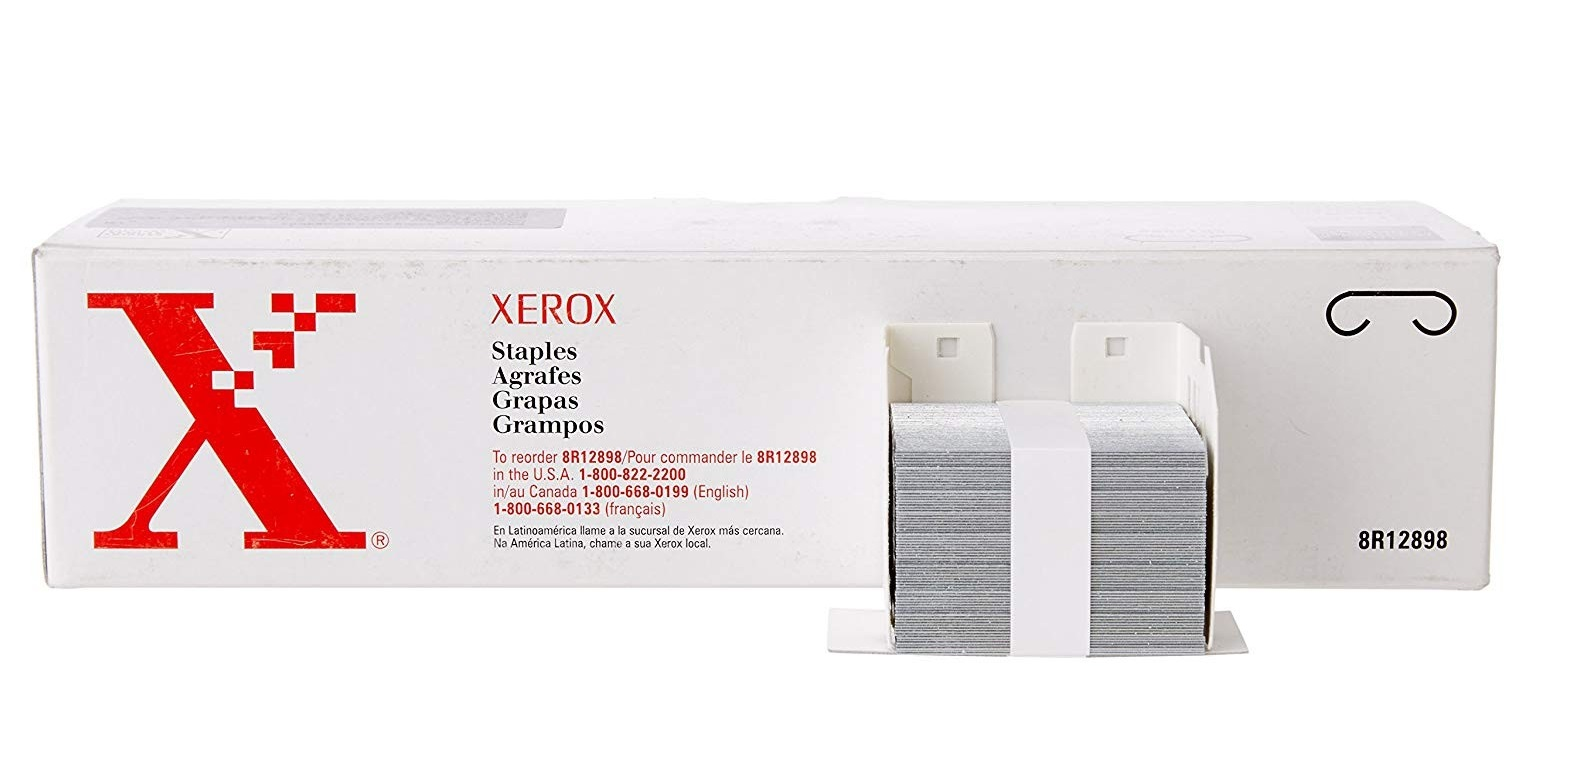 Genuine Xerox Staple Cartridge 100-Sheets Capacity Refills 008R12898